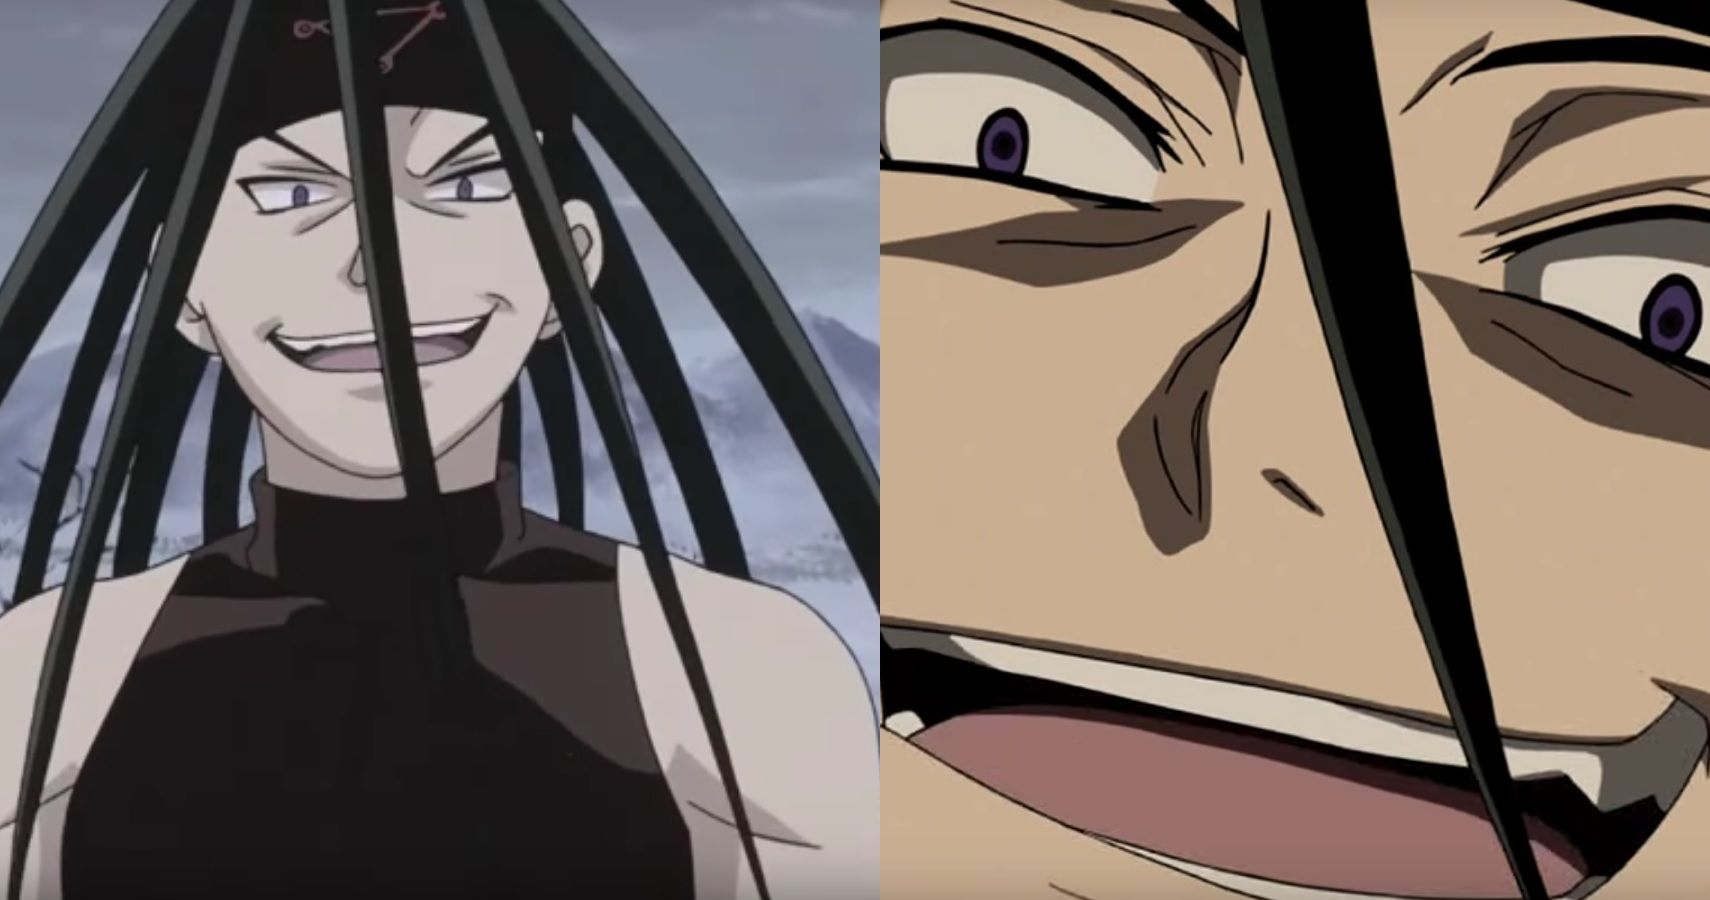 Fullmetal Alchemist: 10 Vital Facts You Didn't Know About Envy